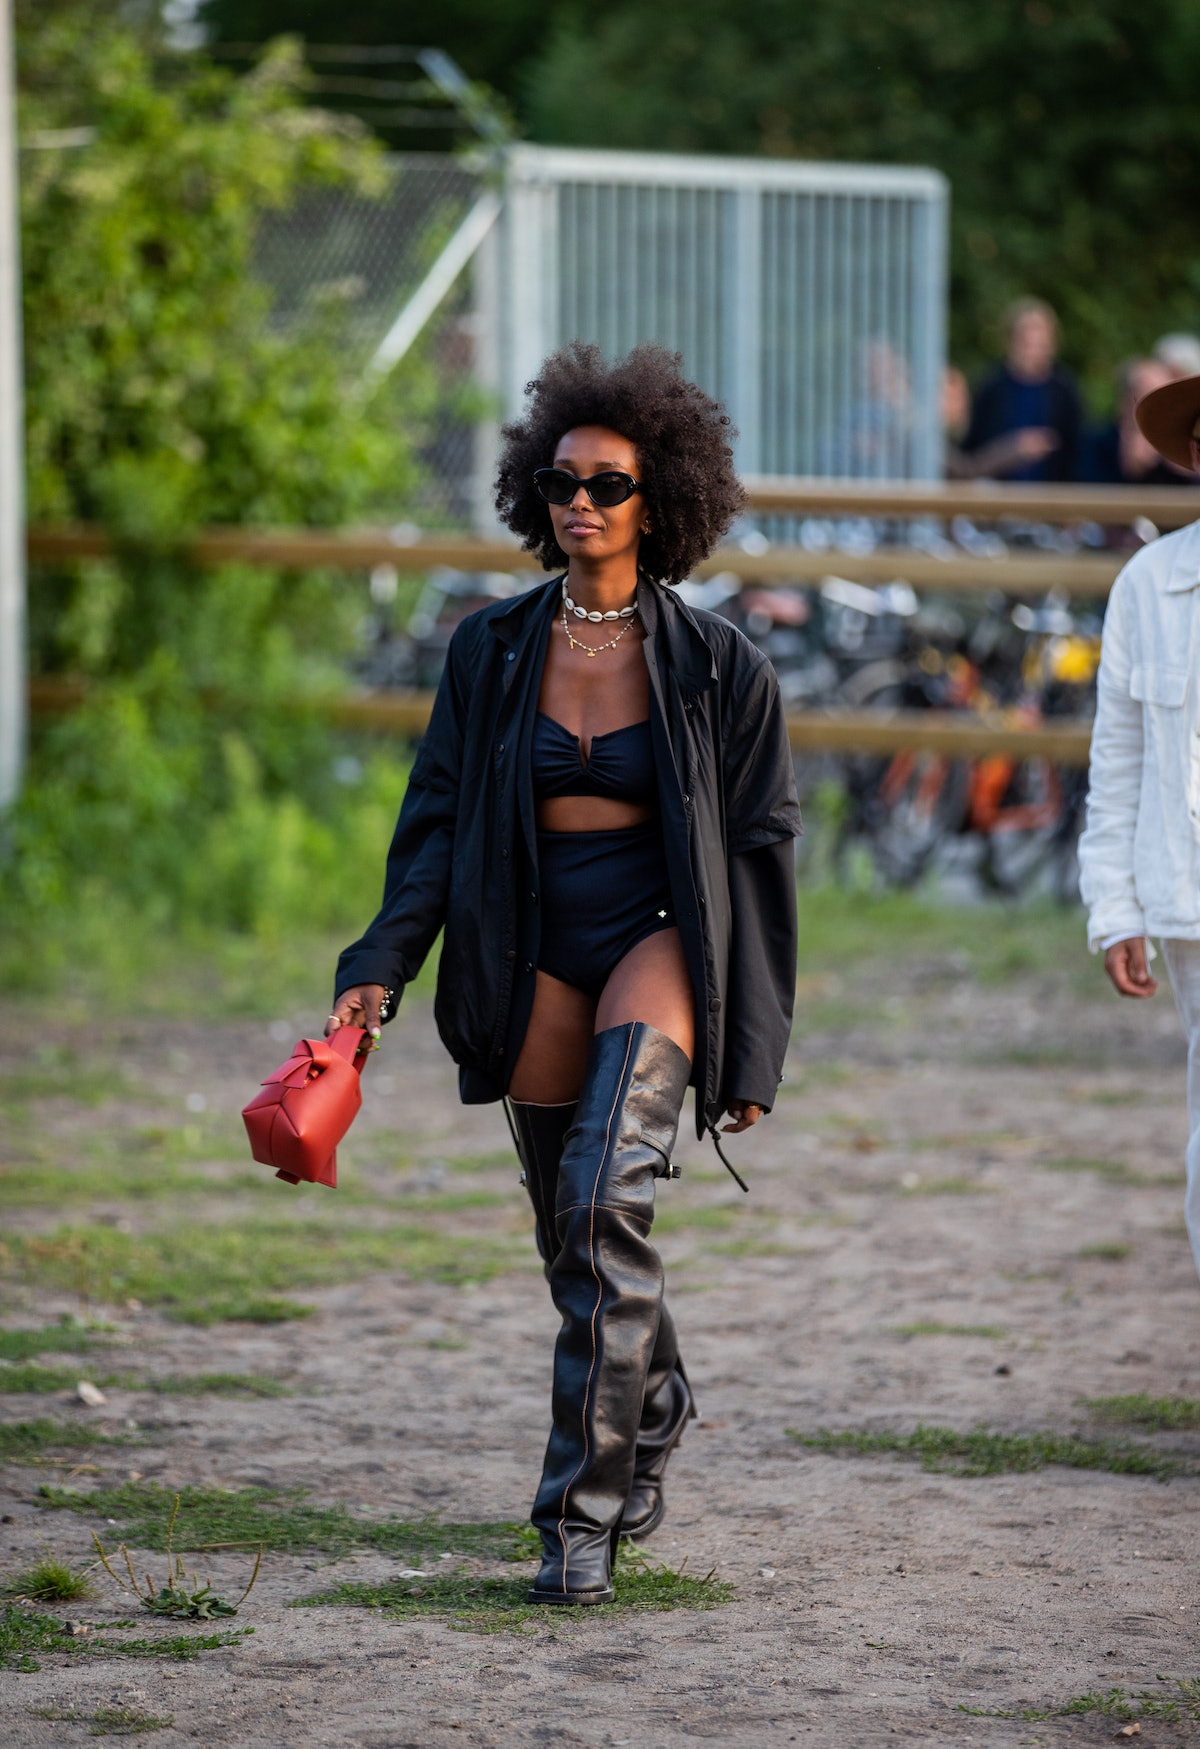 A young fashionable Black woman demonstrates how to wear over-the-knee boots at an event